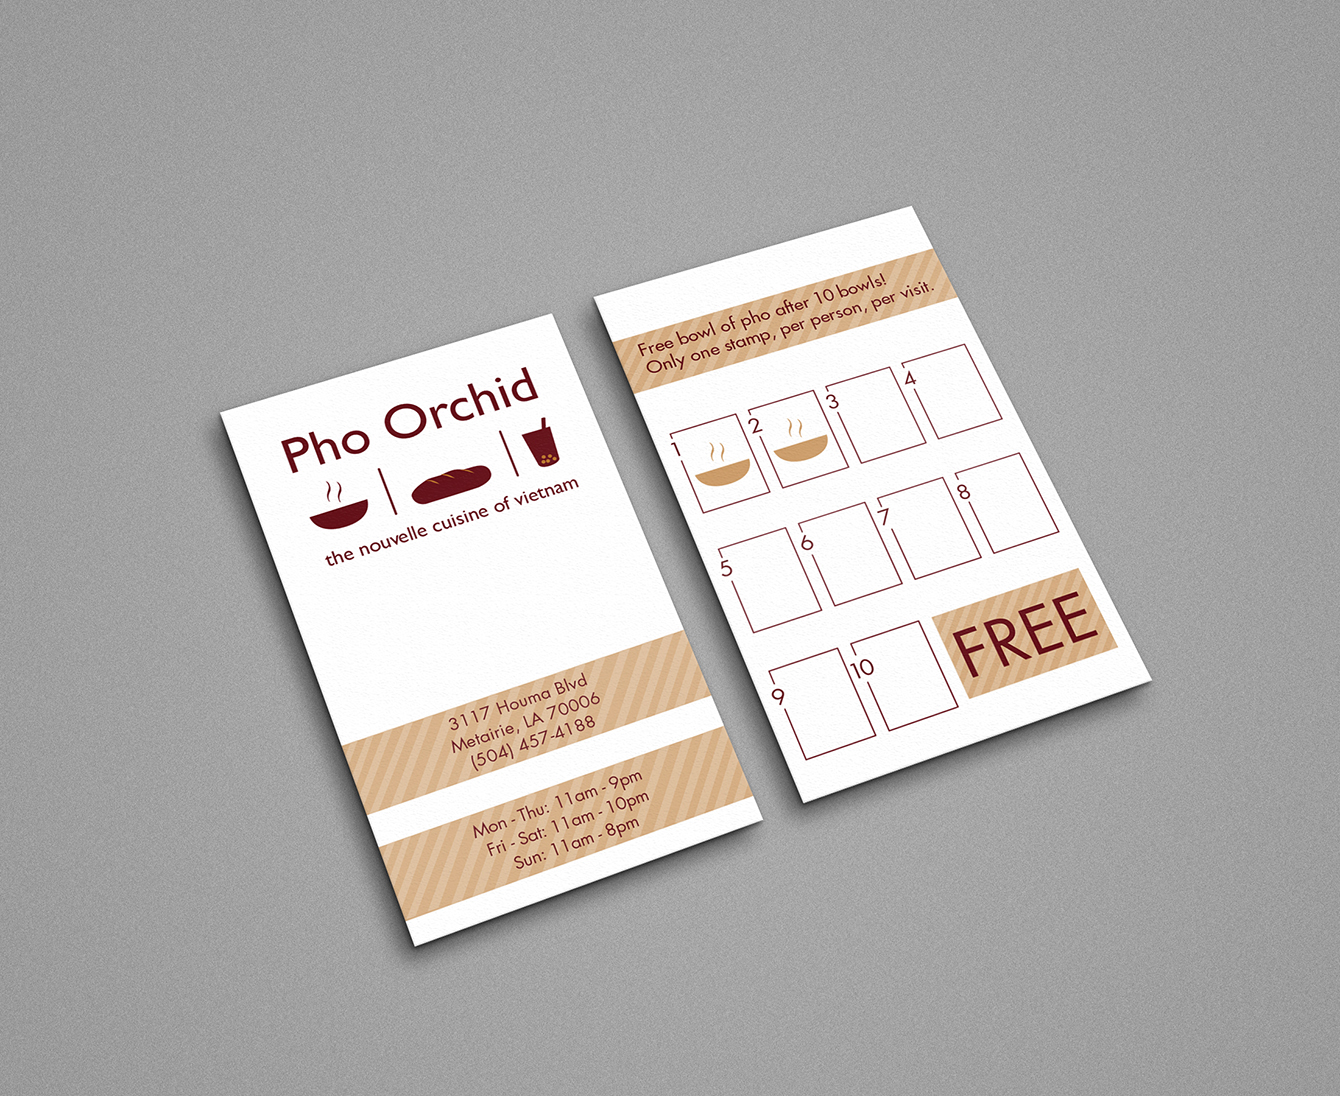 Pho Orchid Rebecca Do Graphic Designer